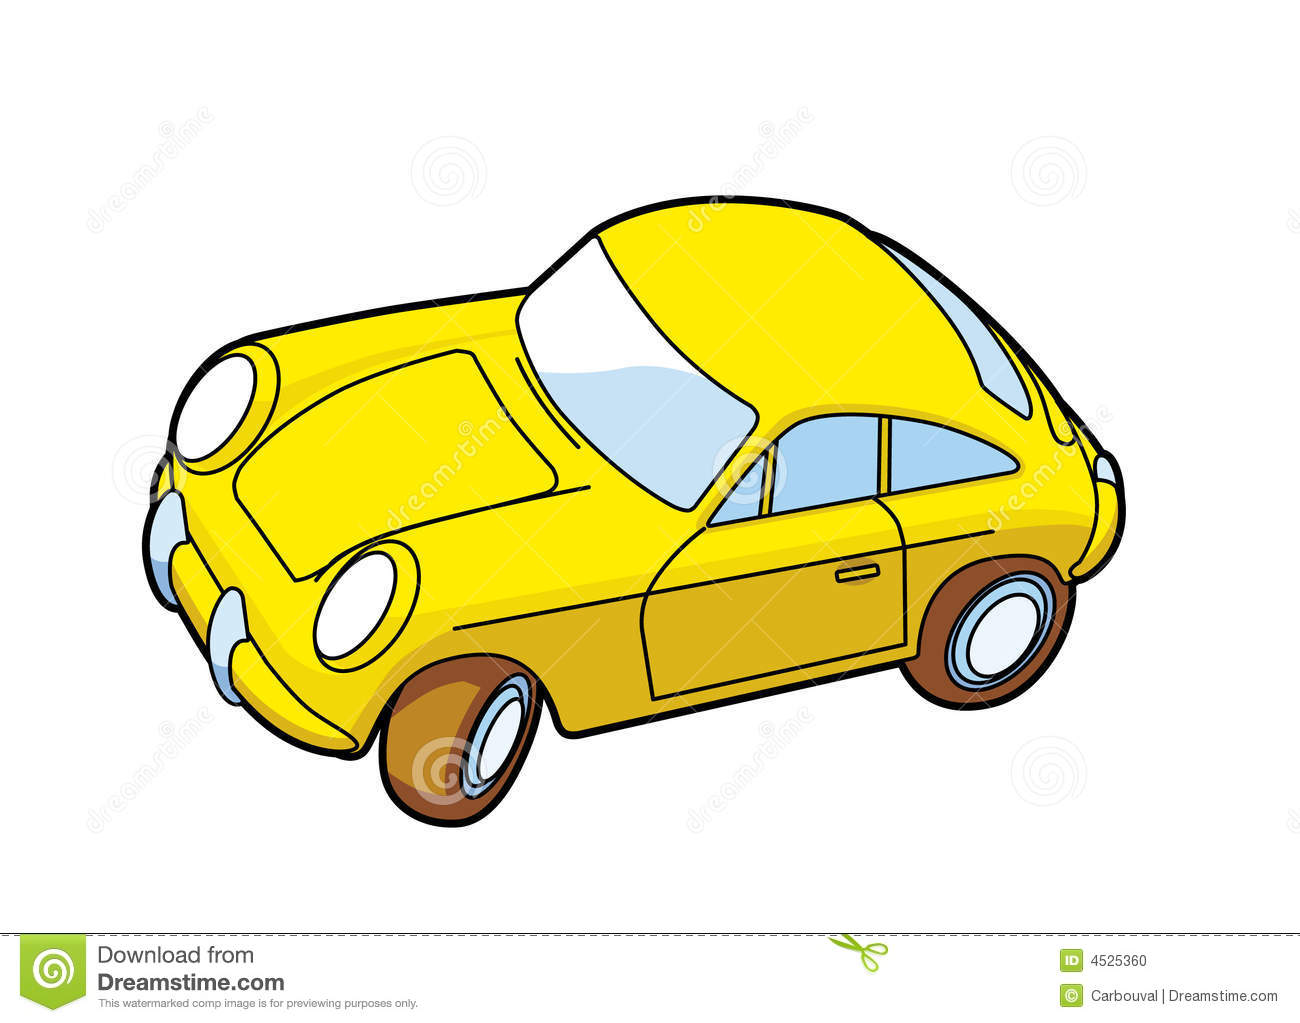 vehicle yellow sports car - photo #34